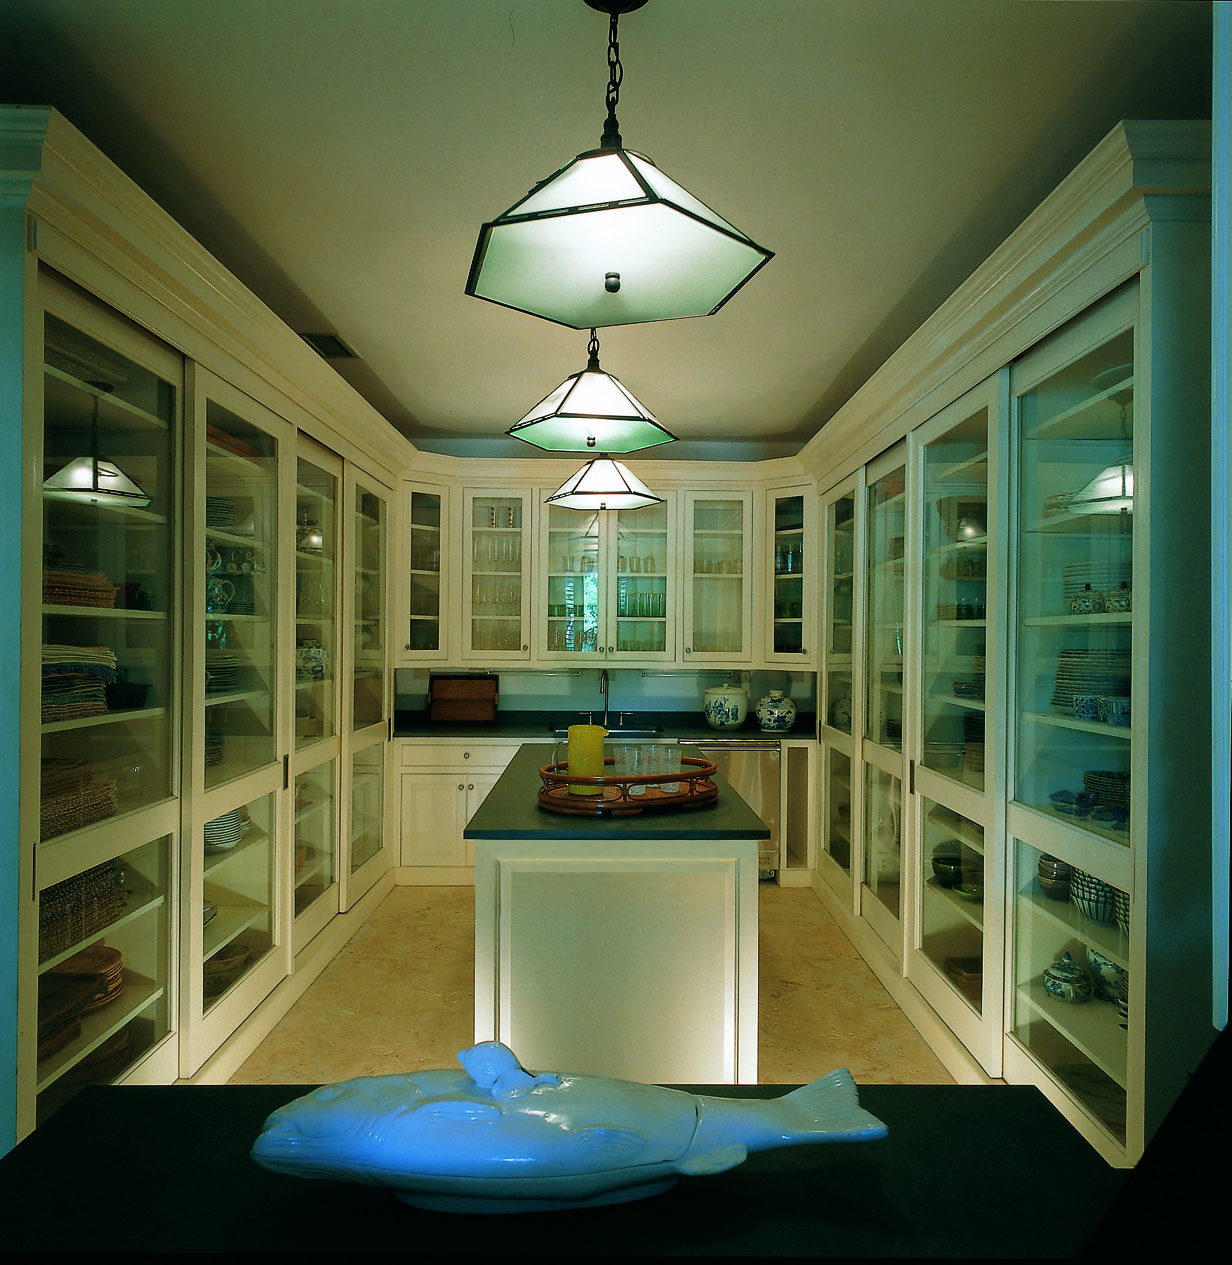 China pantry in Bunny's home in the Dominican Republic (Photo: Fritz von der Schulenburg)